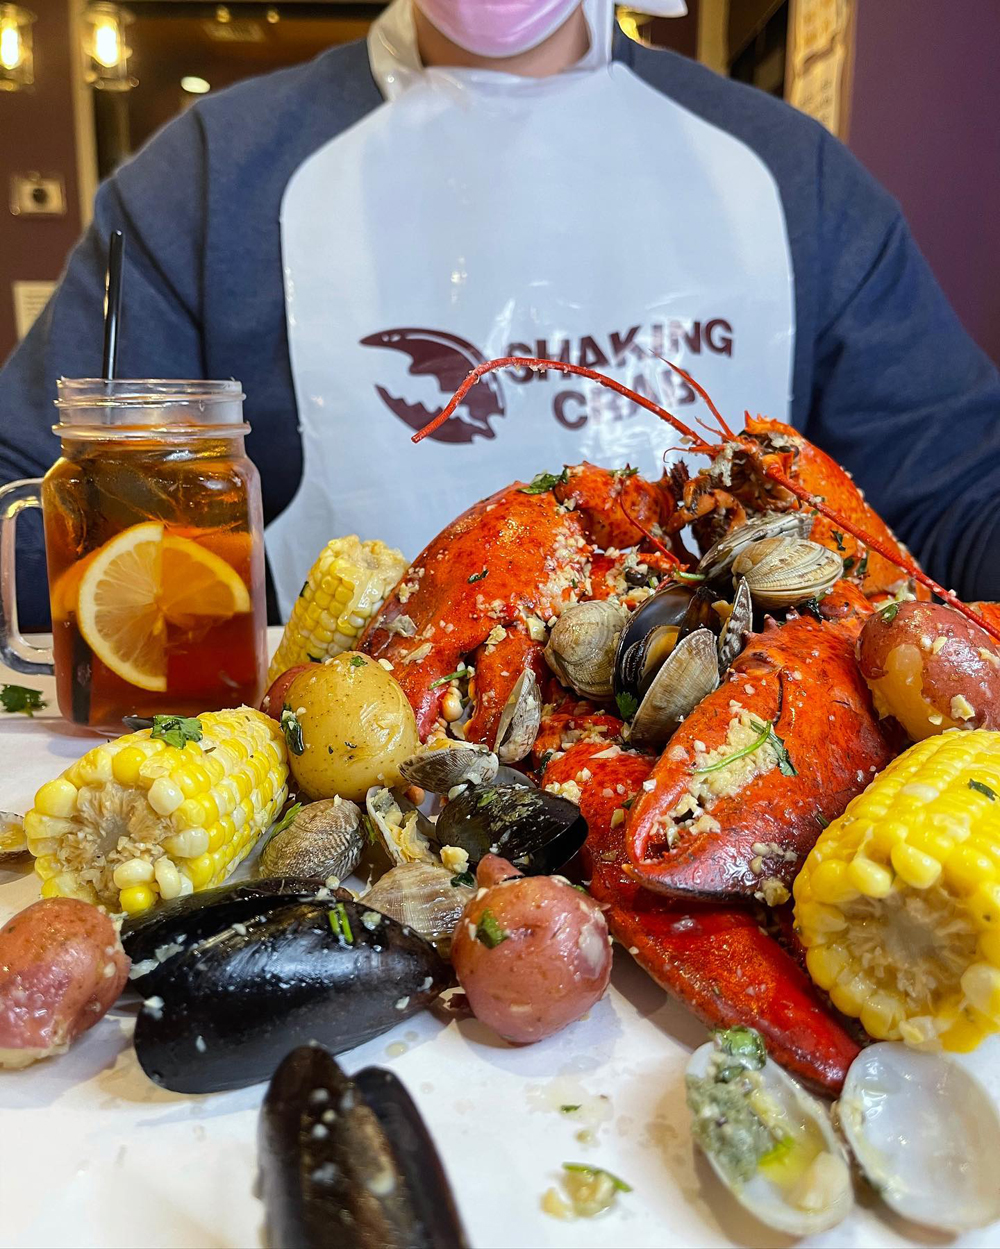 A meal of crab, potatoes, corn, mussels and clams at Shaking Crab from New England.